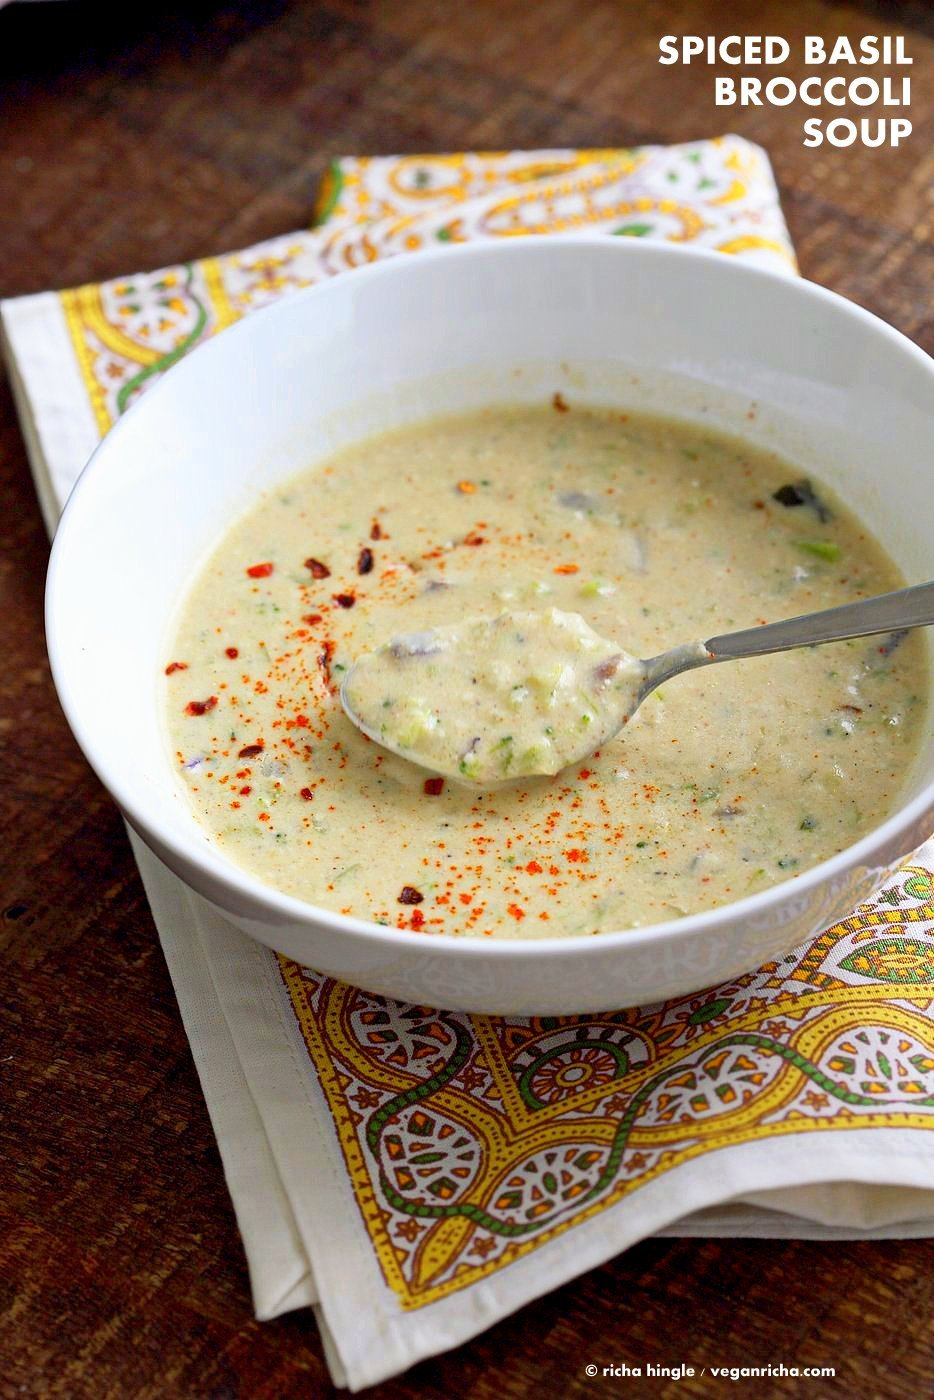 Easy Spiced Creamy Broccoli Soup. Shredded broccoli cooked with spices, basil and a creamy cashew sauce. Vegan Gluten-free Recipe. | VeganRicha.com #vegan #glutenfree #veganricha